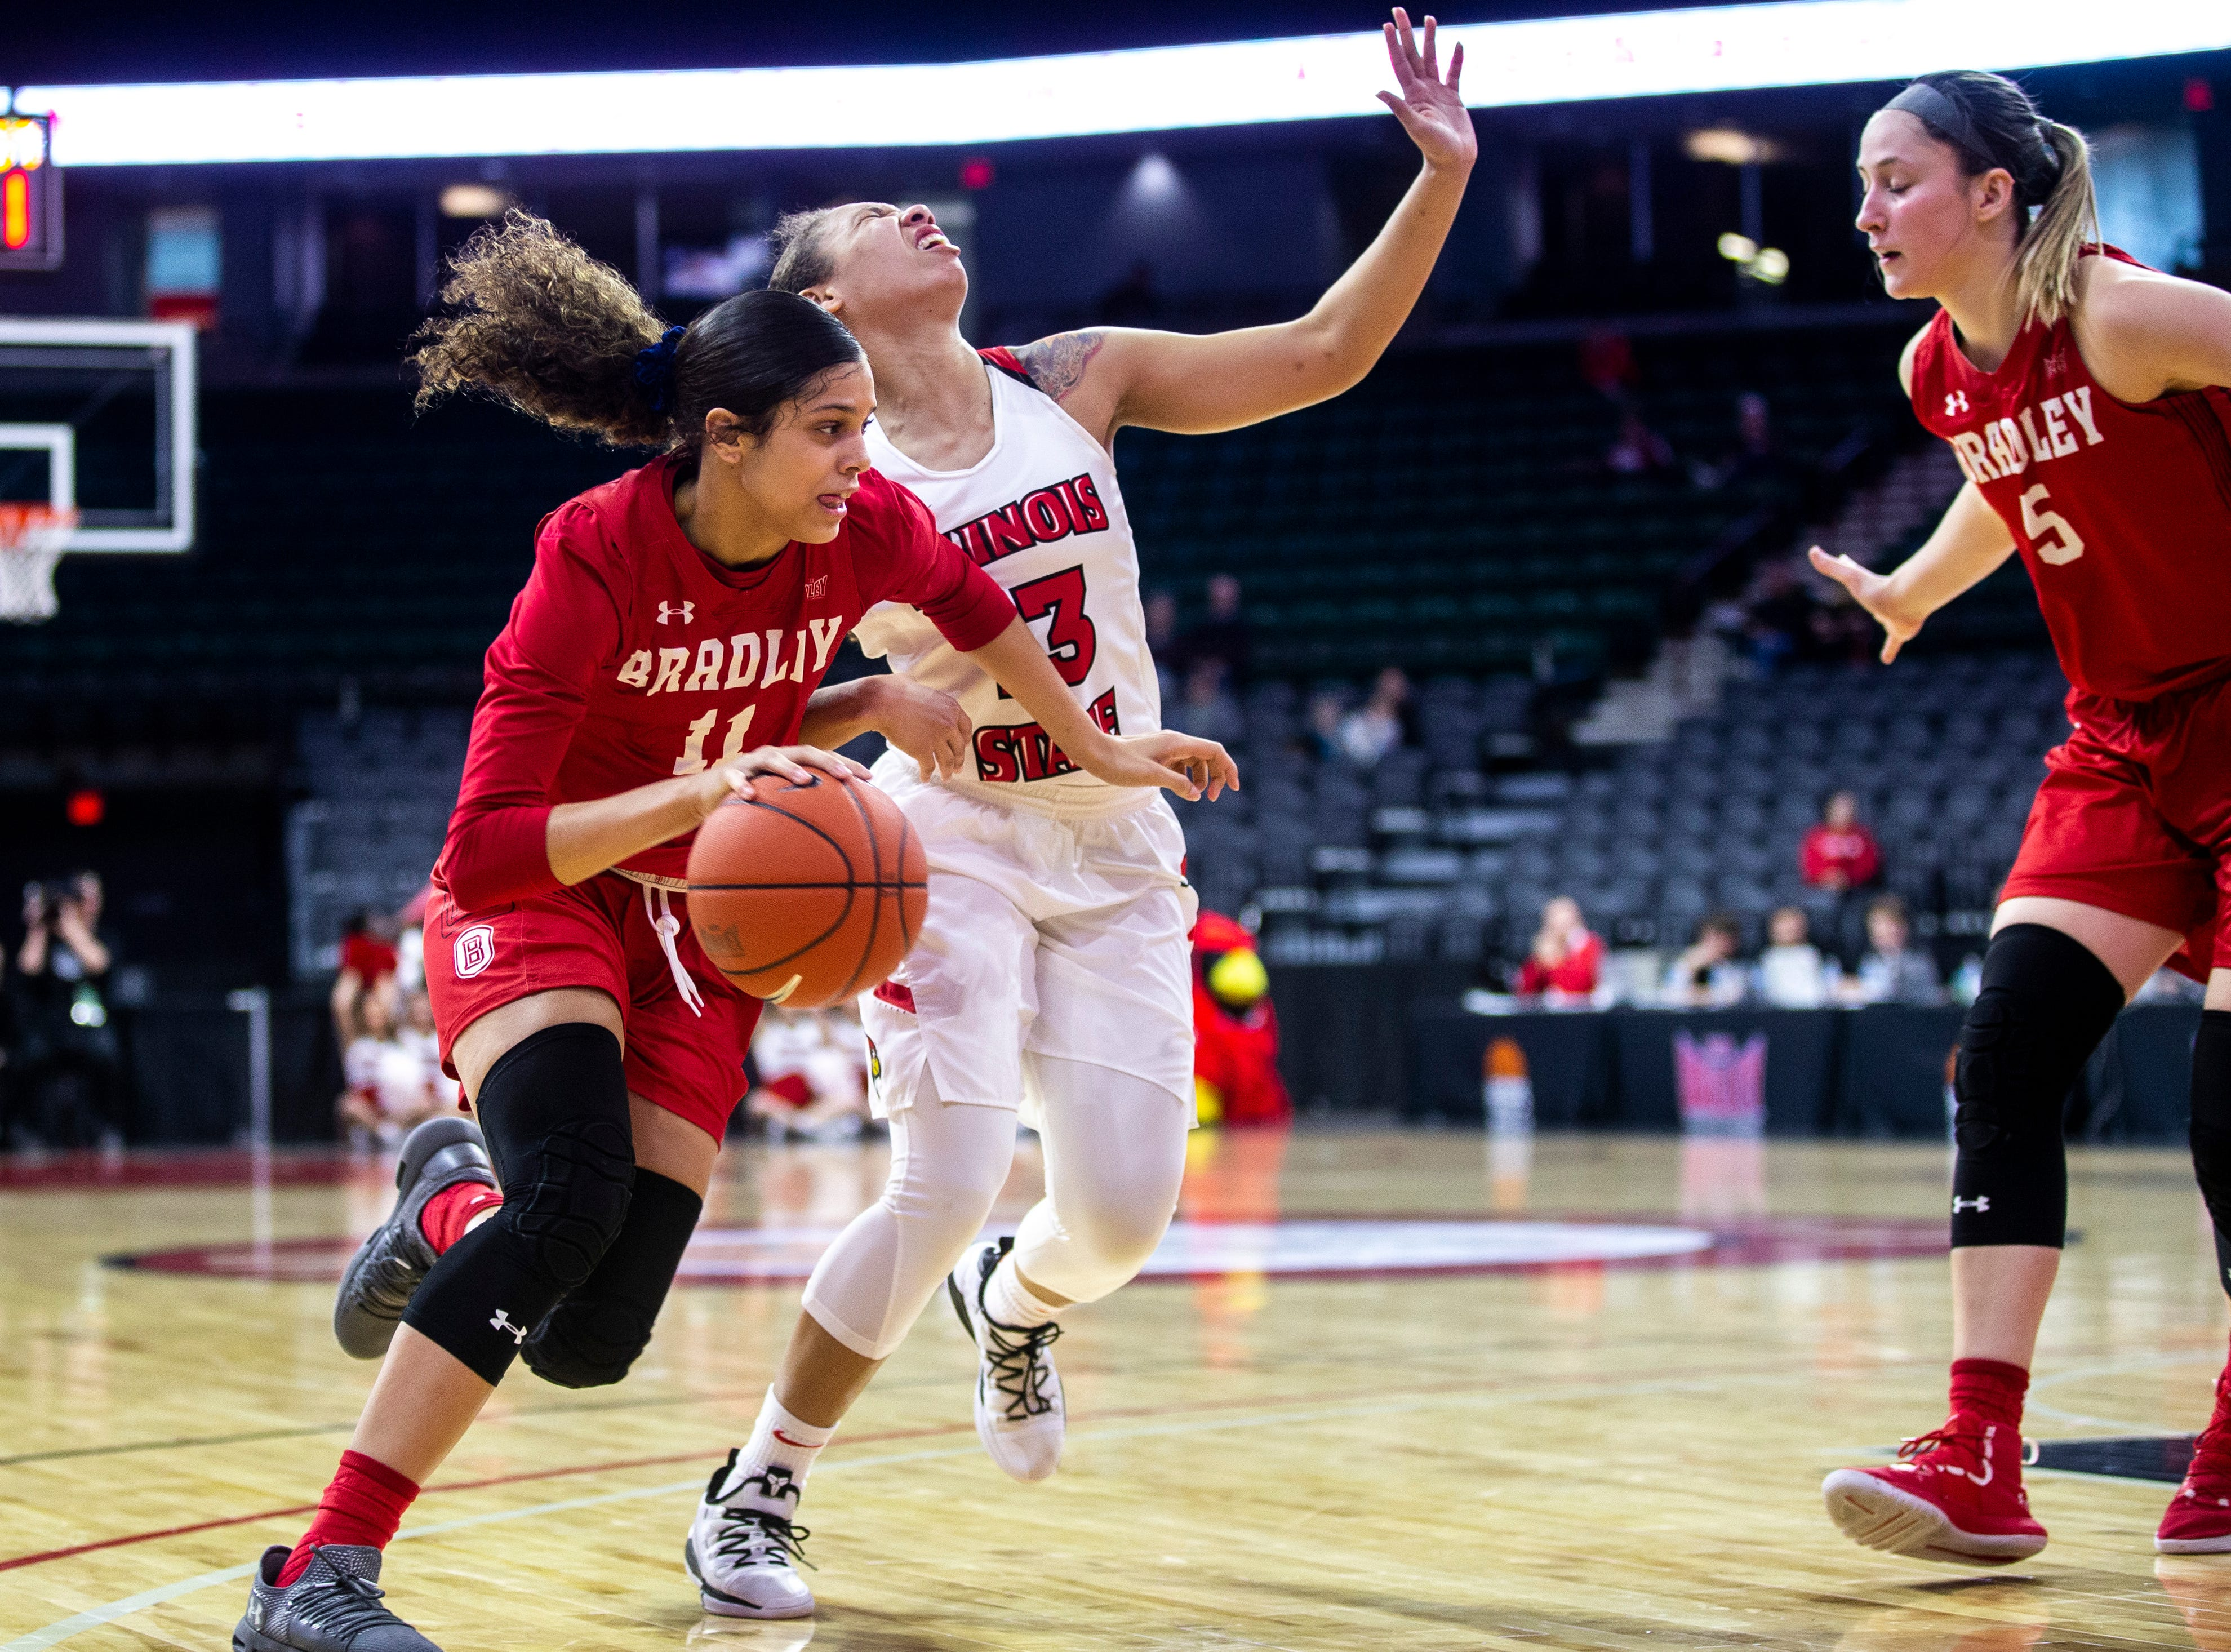 Illinois State guard Katrina Beck (13) reacts after colliding with Bradley's Lasha Petree (11) during a NCAA Missouri Valley Conference women's basketball quarterfinal tournament game, Friday, March 15, 2019, at the TaxSlayer Center in Moline, Illinois.